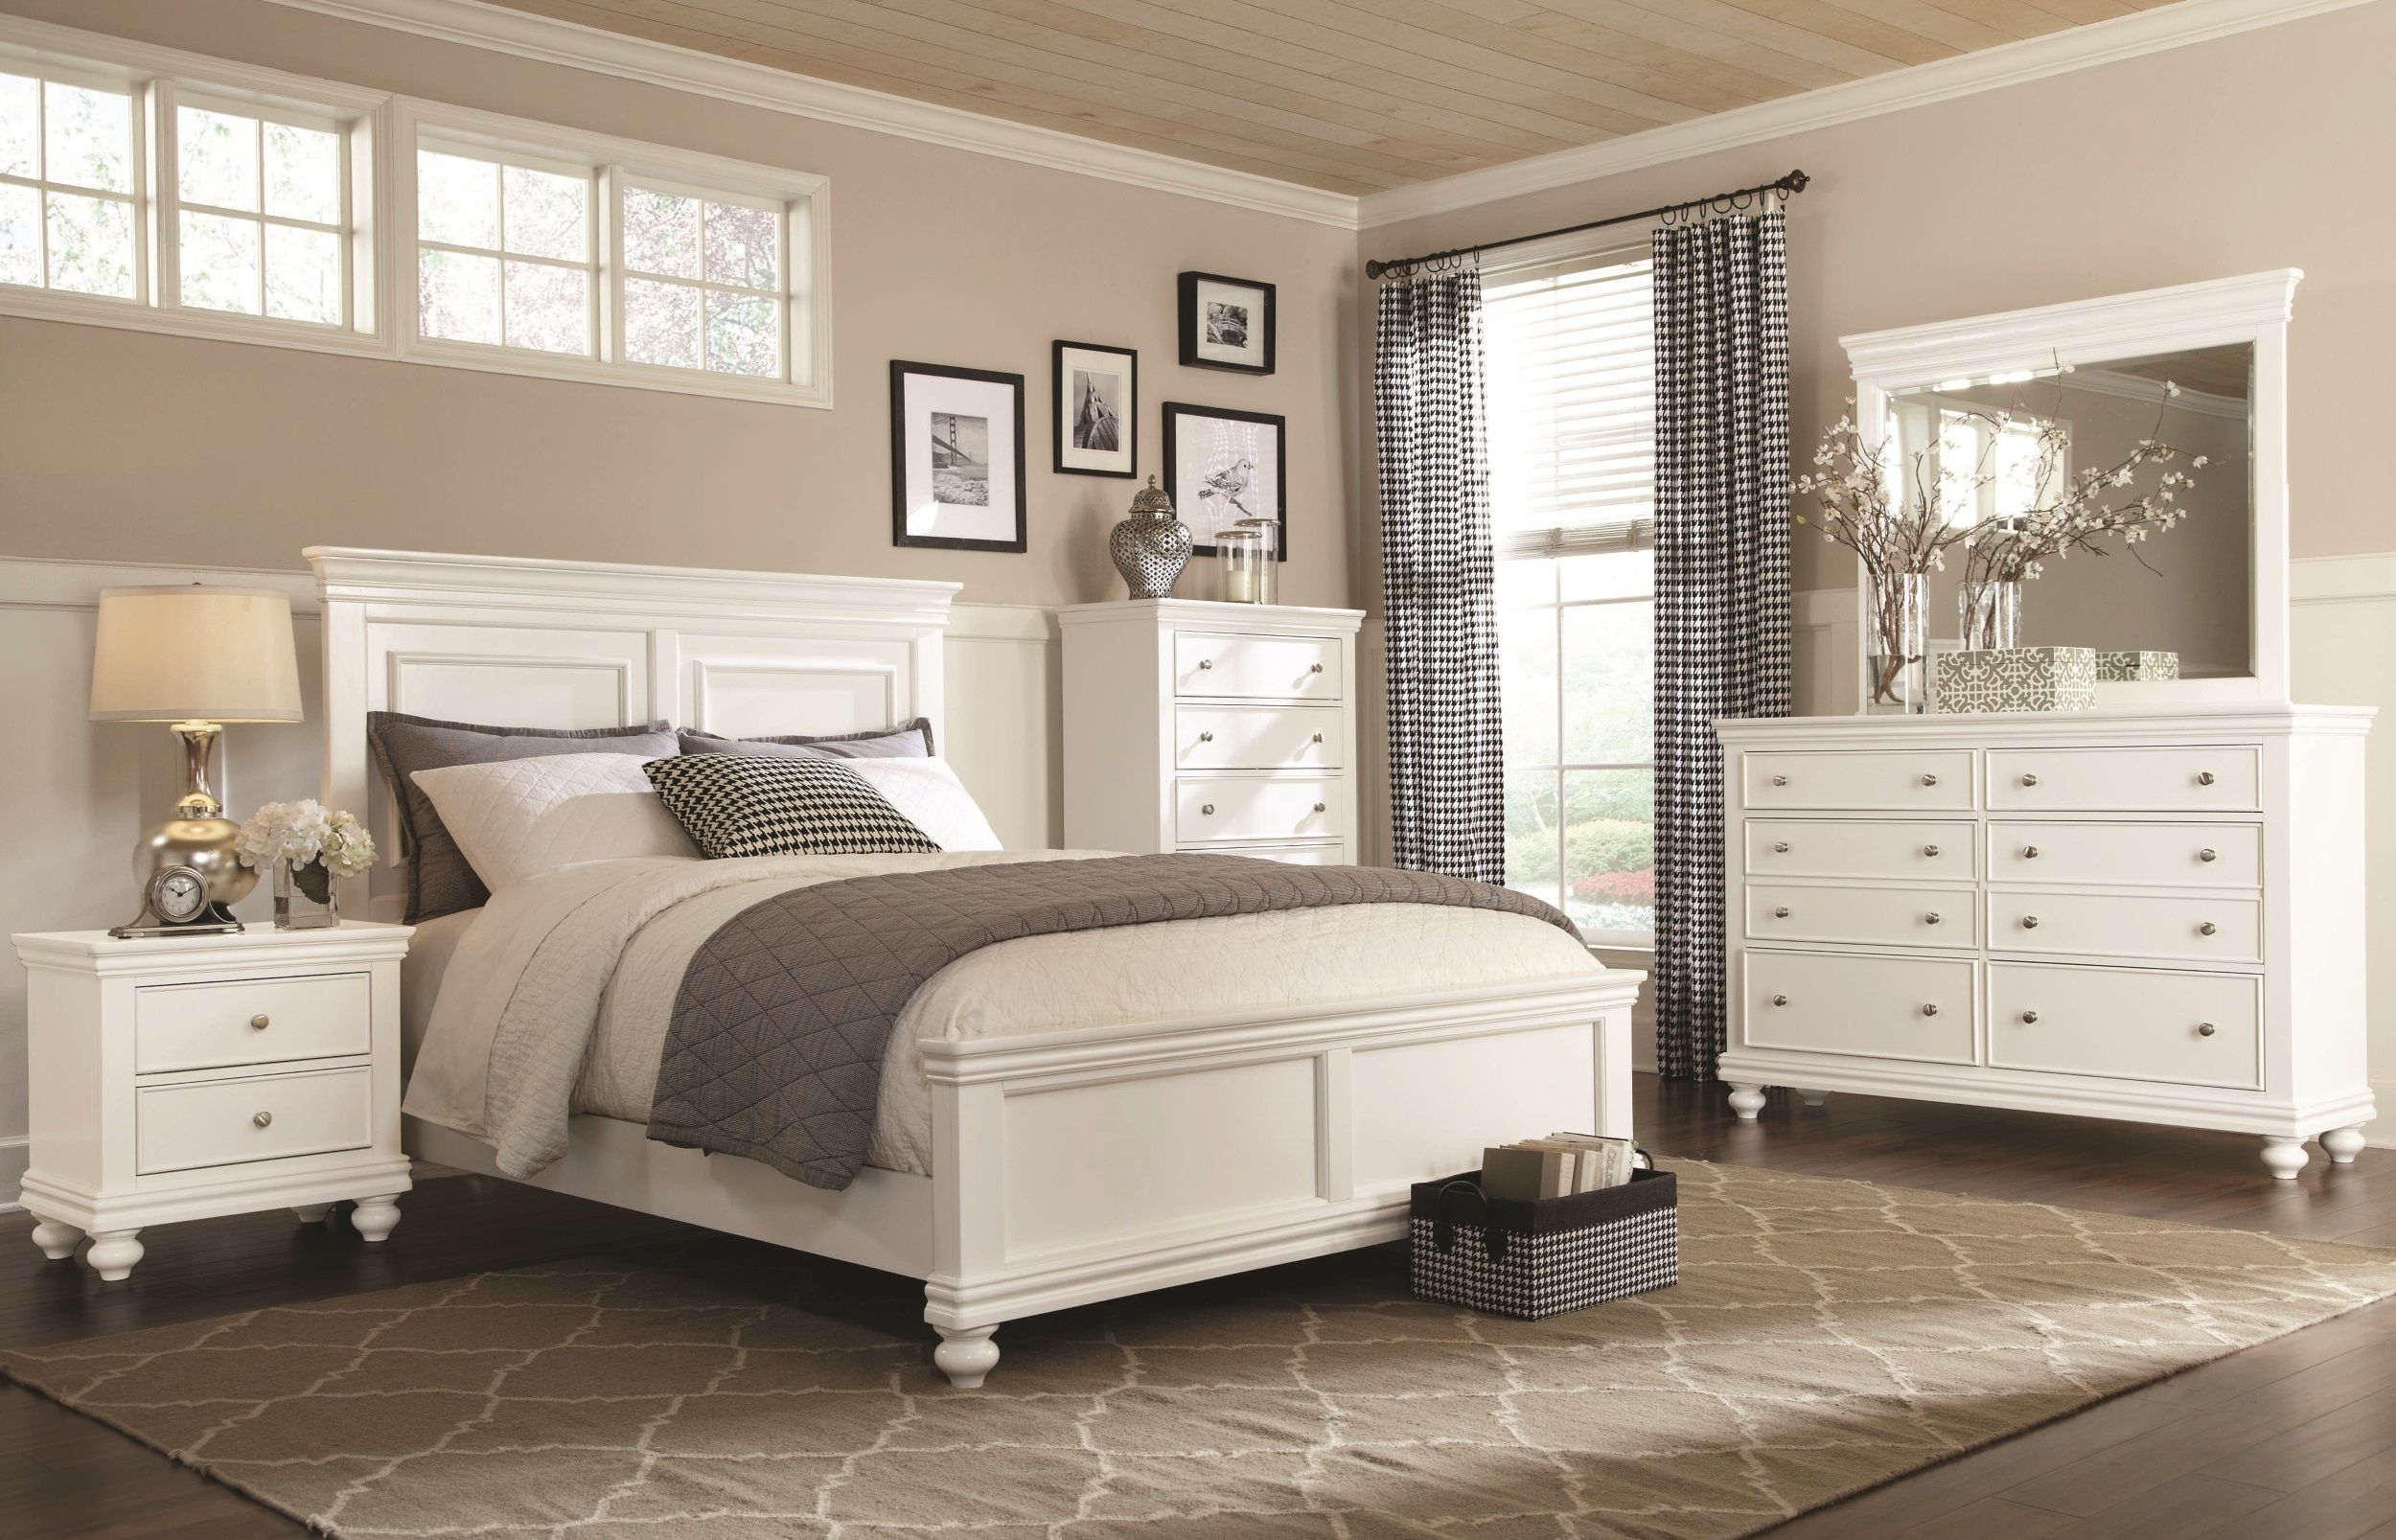 Bedroom Bedroom Bed Beautiful Bedroom Sets King Size Bedroom With Regard To Sizing 20 White Bedroom Set Furniture White Bedroom Set King Size Bedroom Furniture